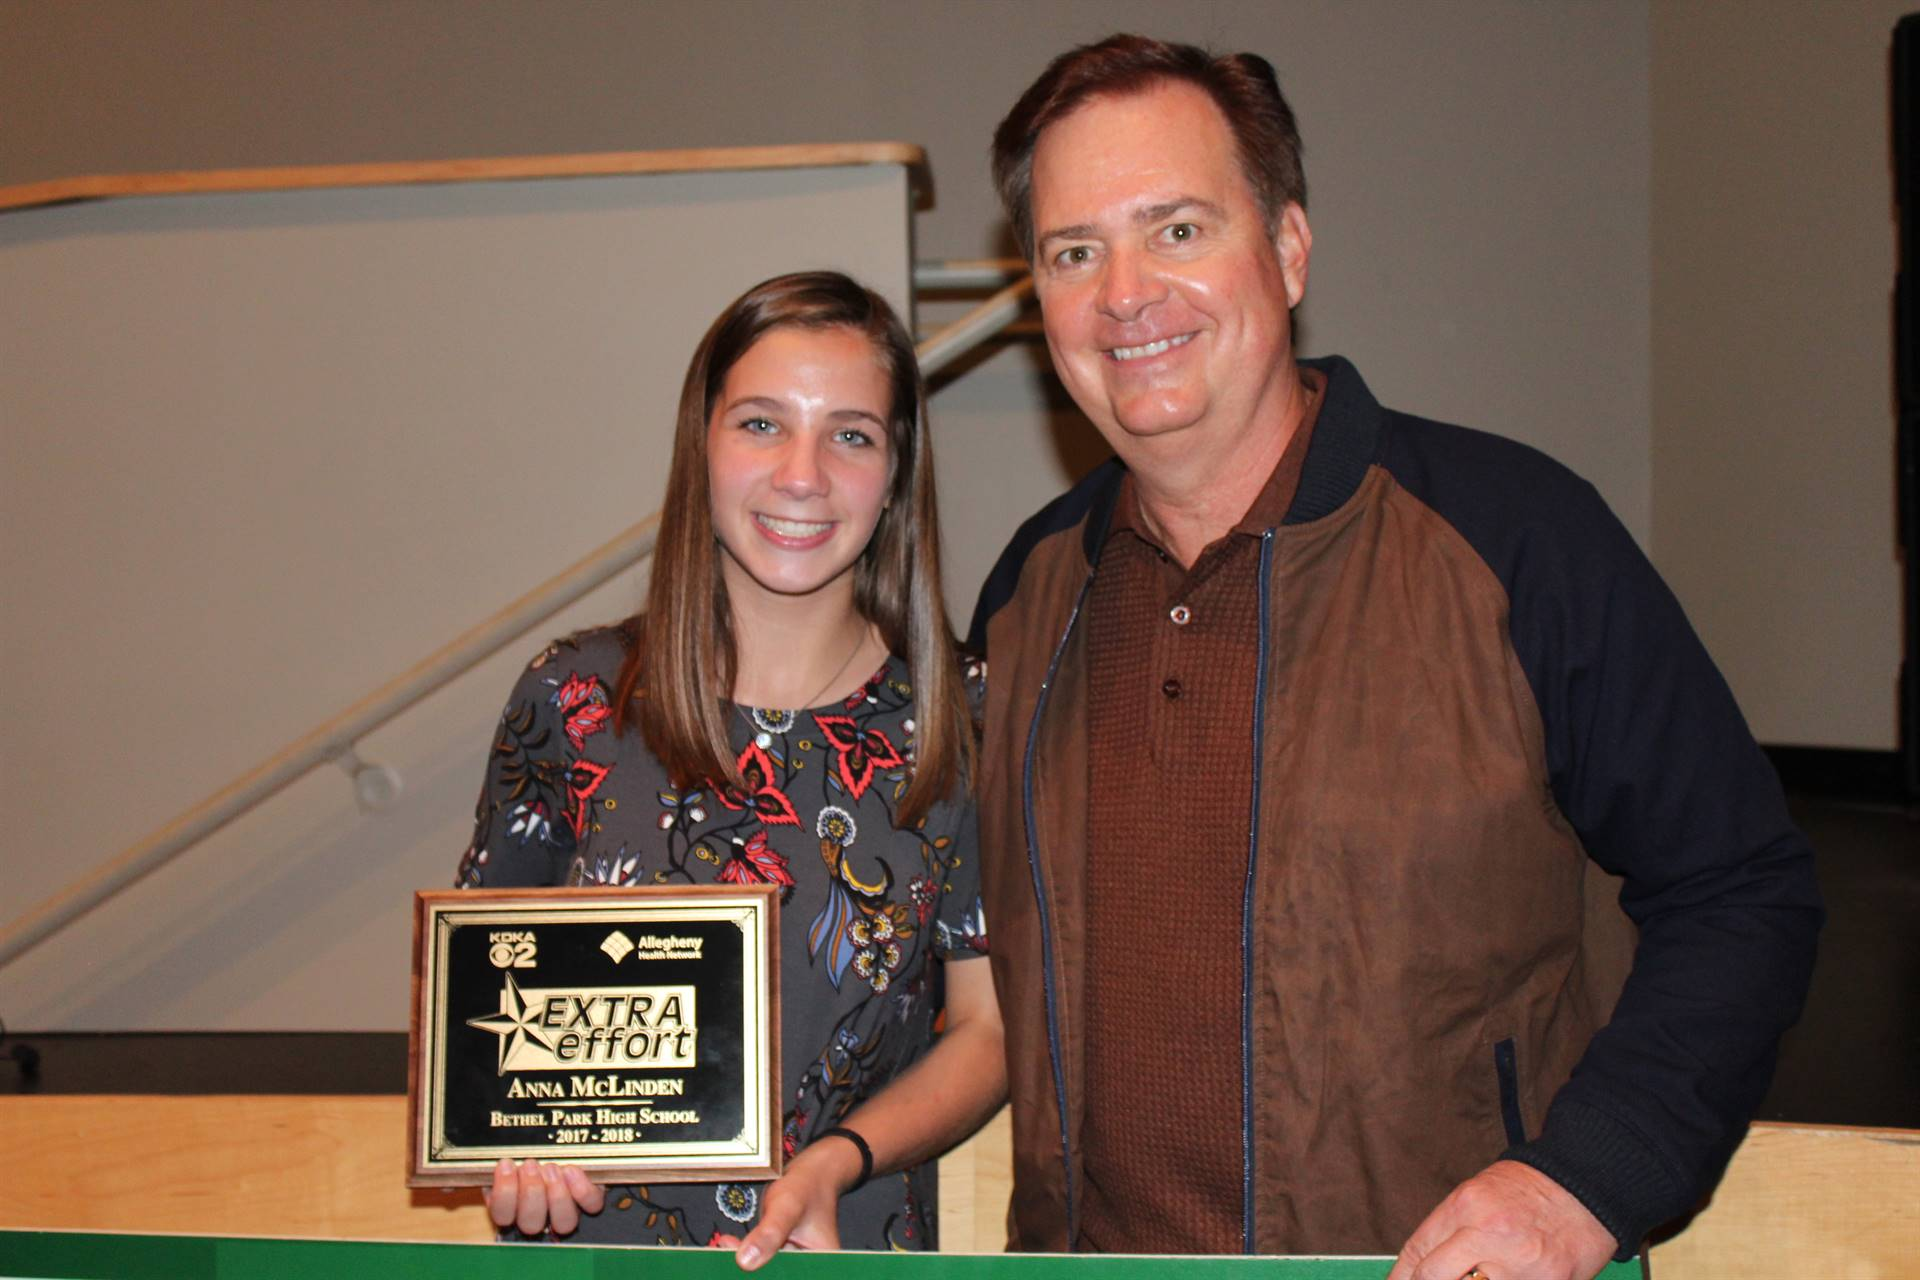 Anna McLinden and Bob Pompeani with the Extra Effort Award